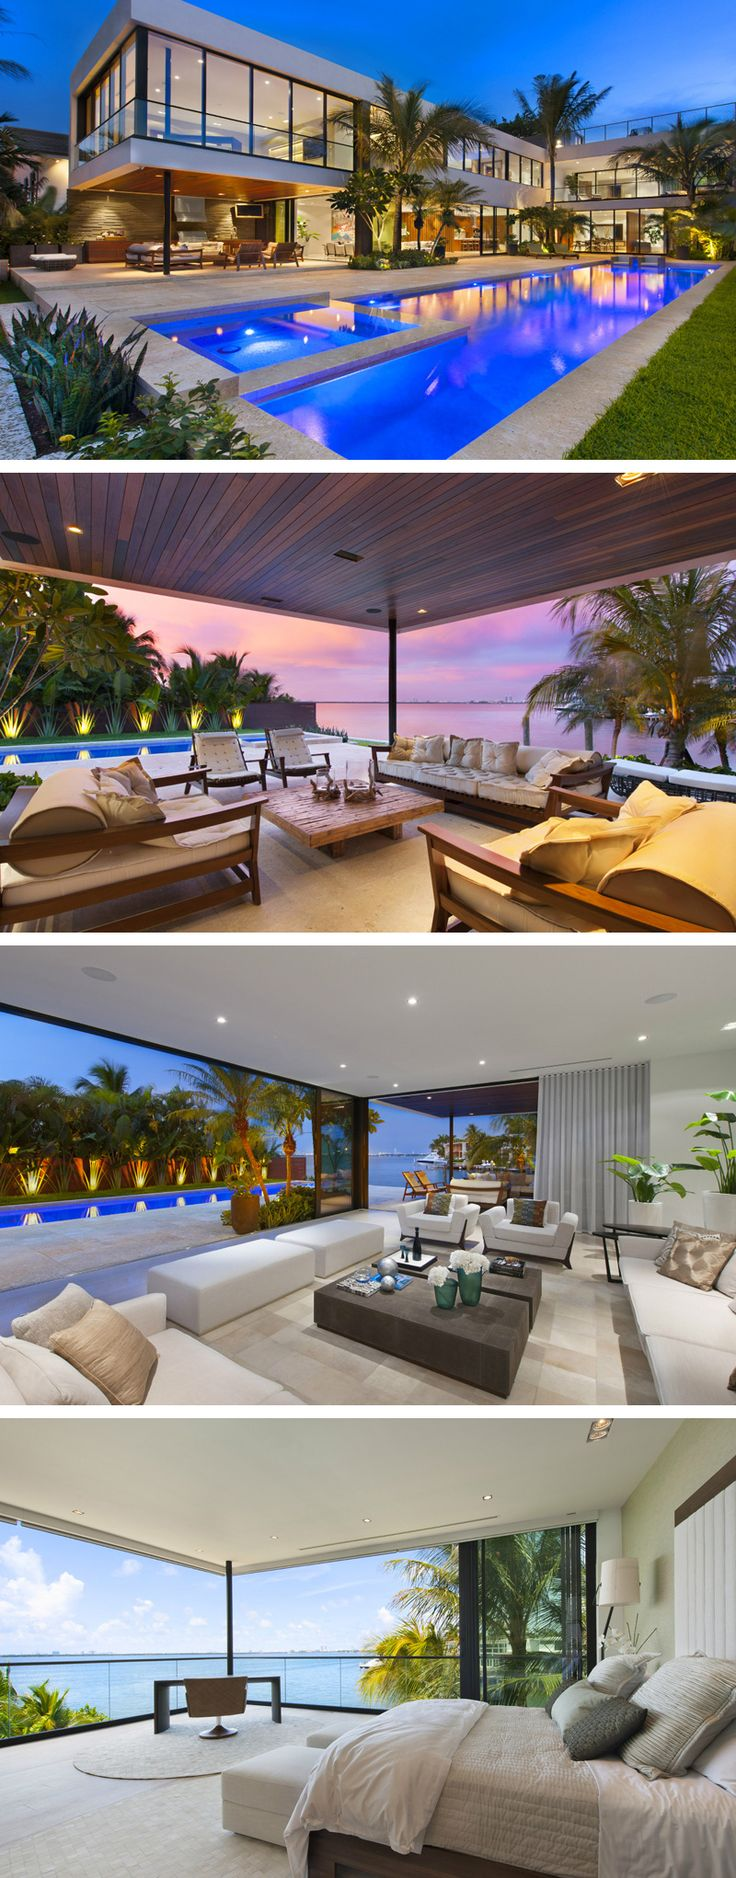 The breathtaking view of the ocean as well as the impressive design of the house creates a home that anyone wants to own! Modern Miami Beach House with Tropical Beauty in Florida